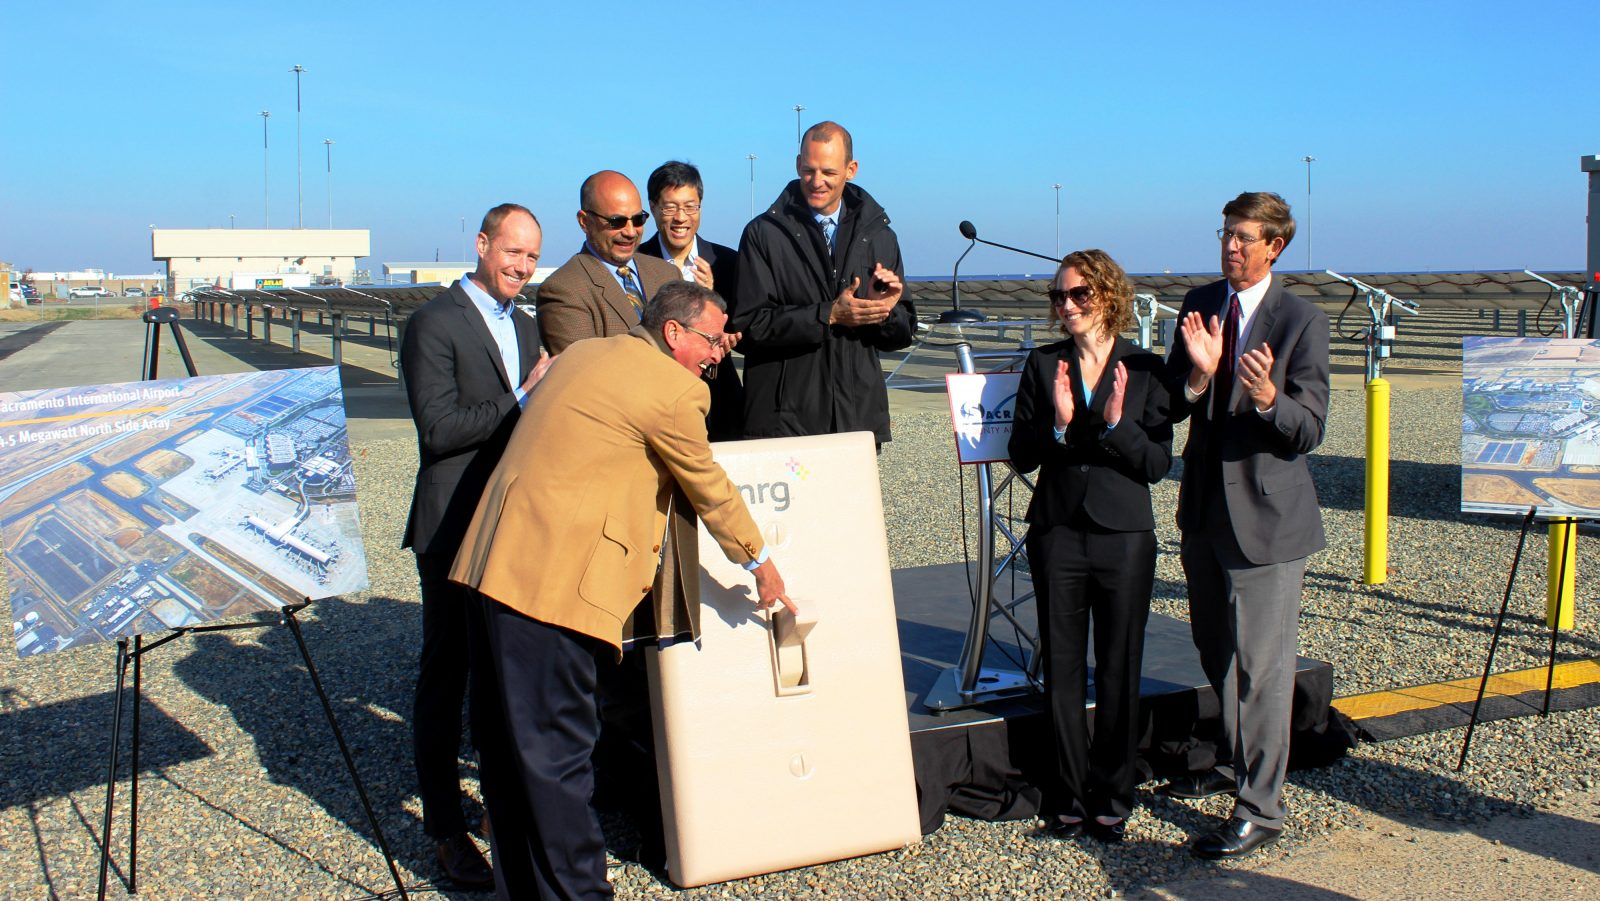 Sacramento Airport Celebrates New Solar Facility That Will Provide More Than 30% of Electricity